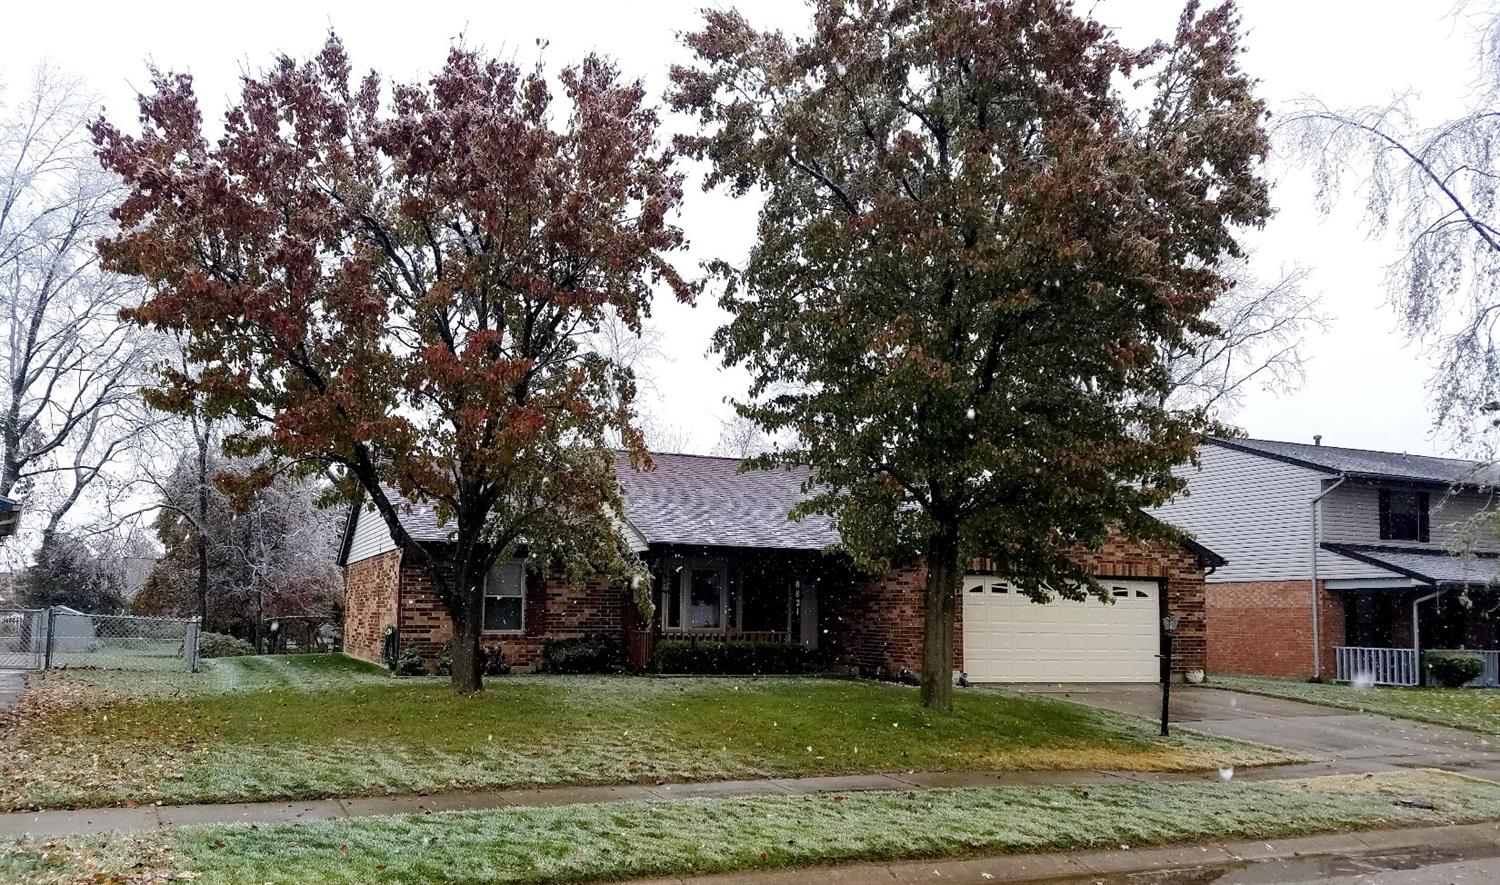 8821 Emeraldgate Dr Montgomery Co., OH